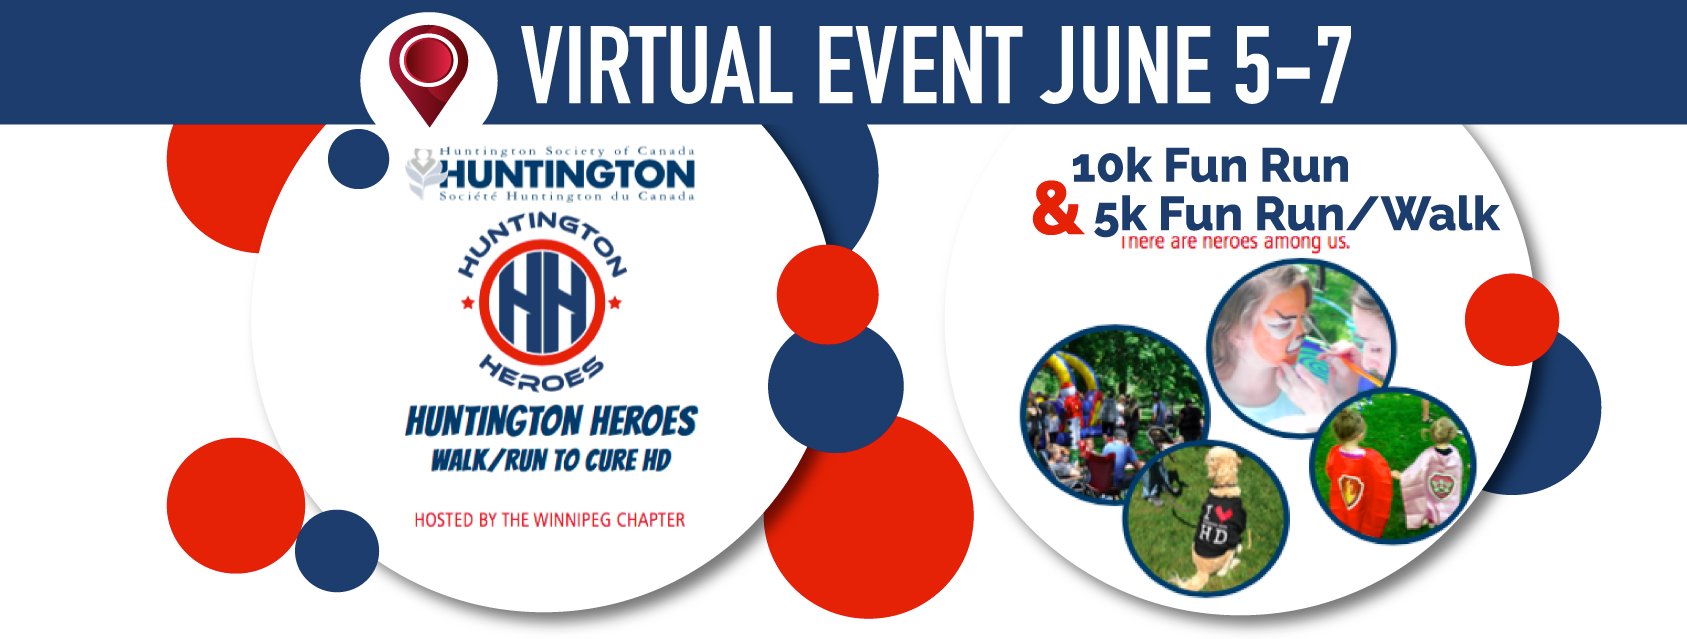 Huntington Heroes Walk to Cure HD  **VIRTUAL EVENT JUNE 5-7, 2020*